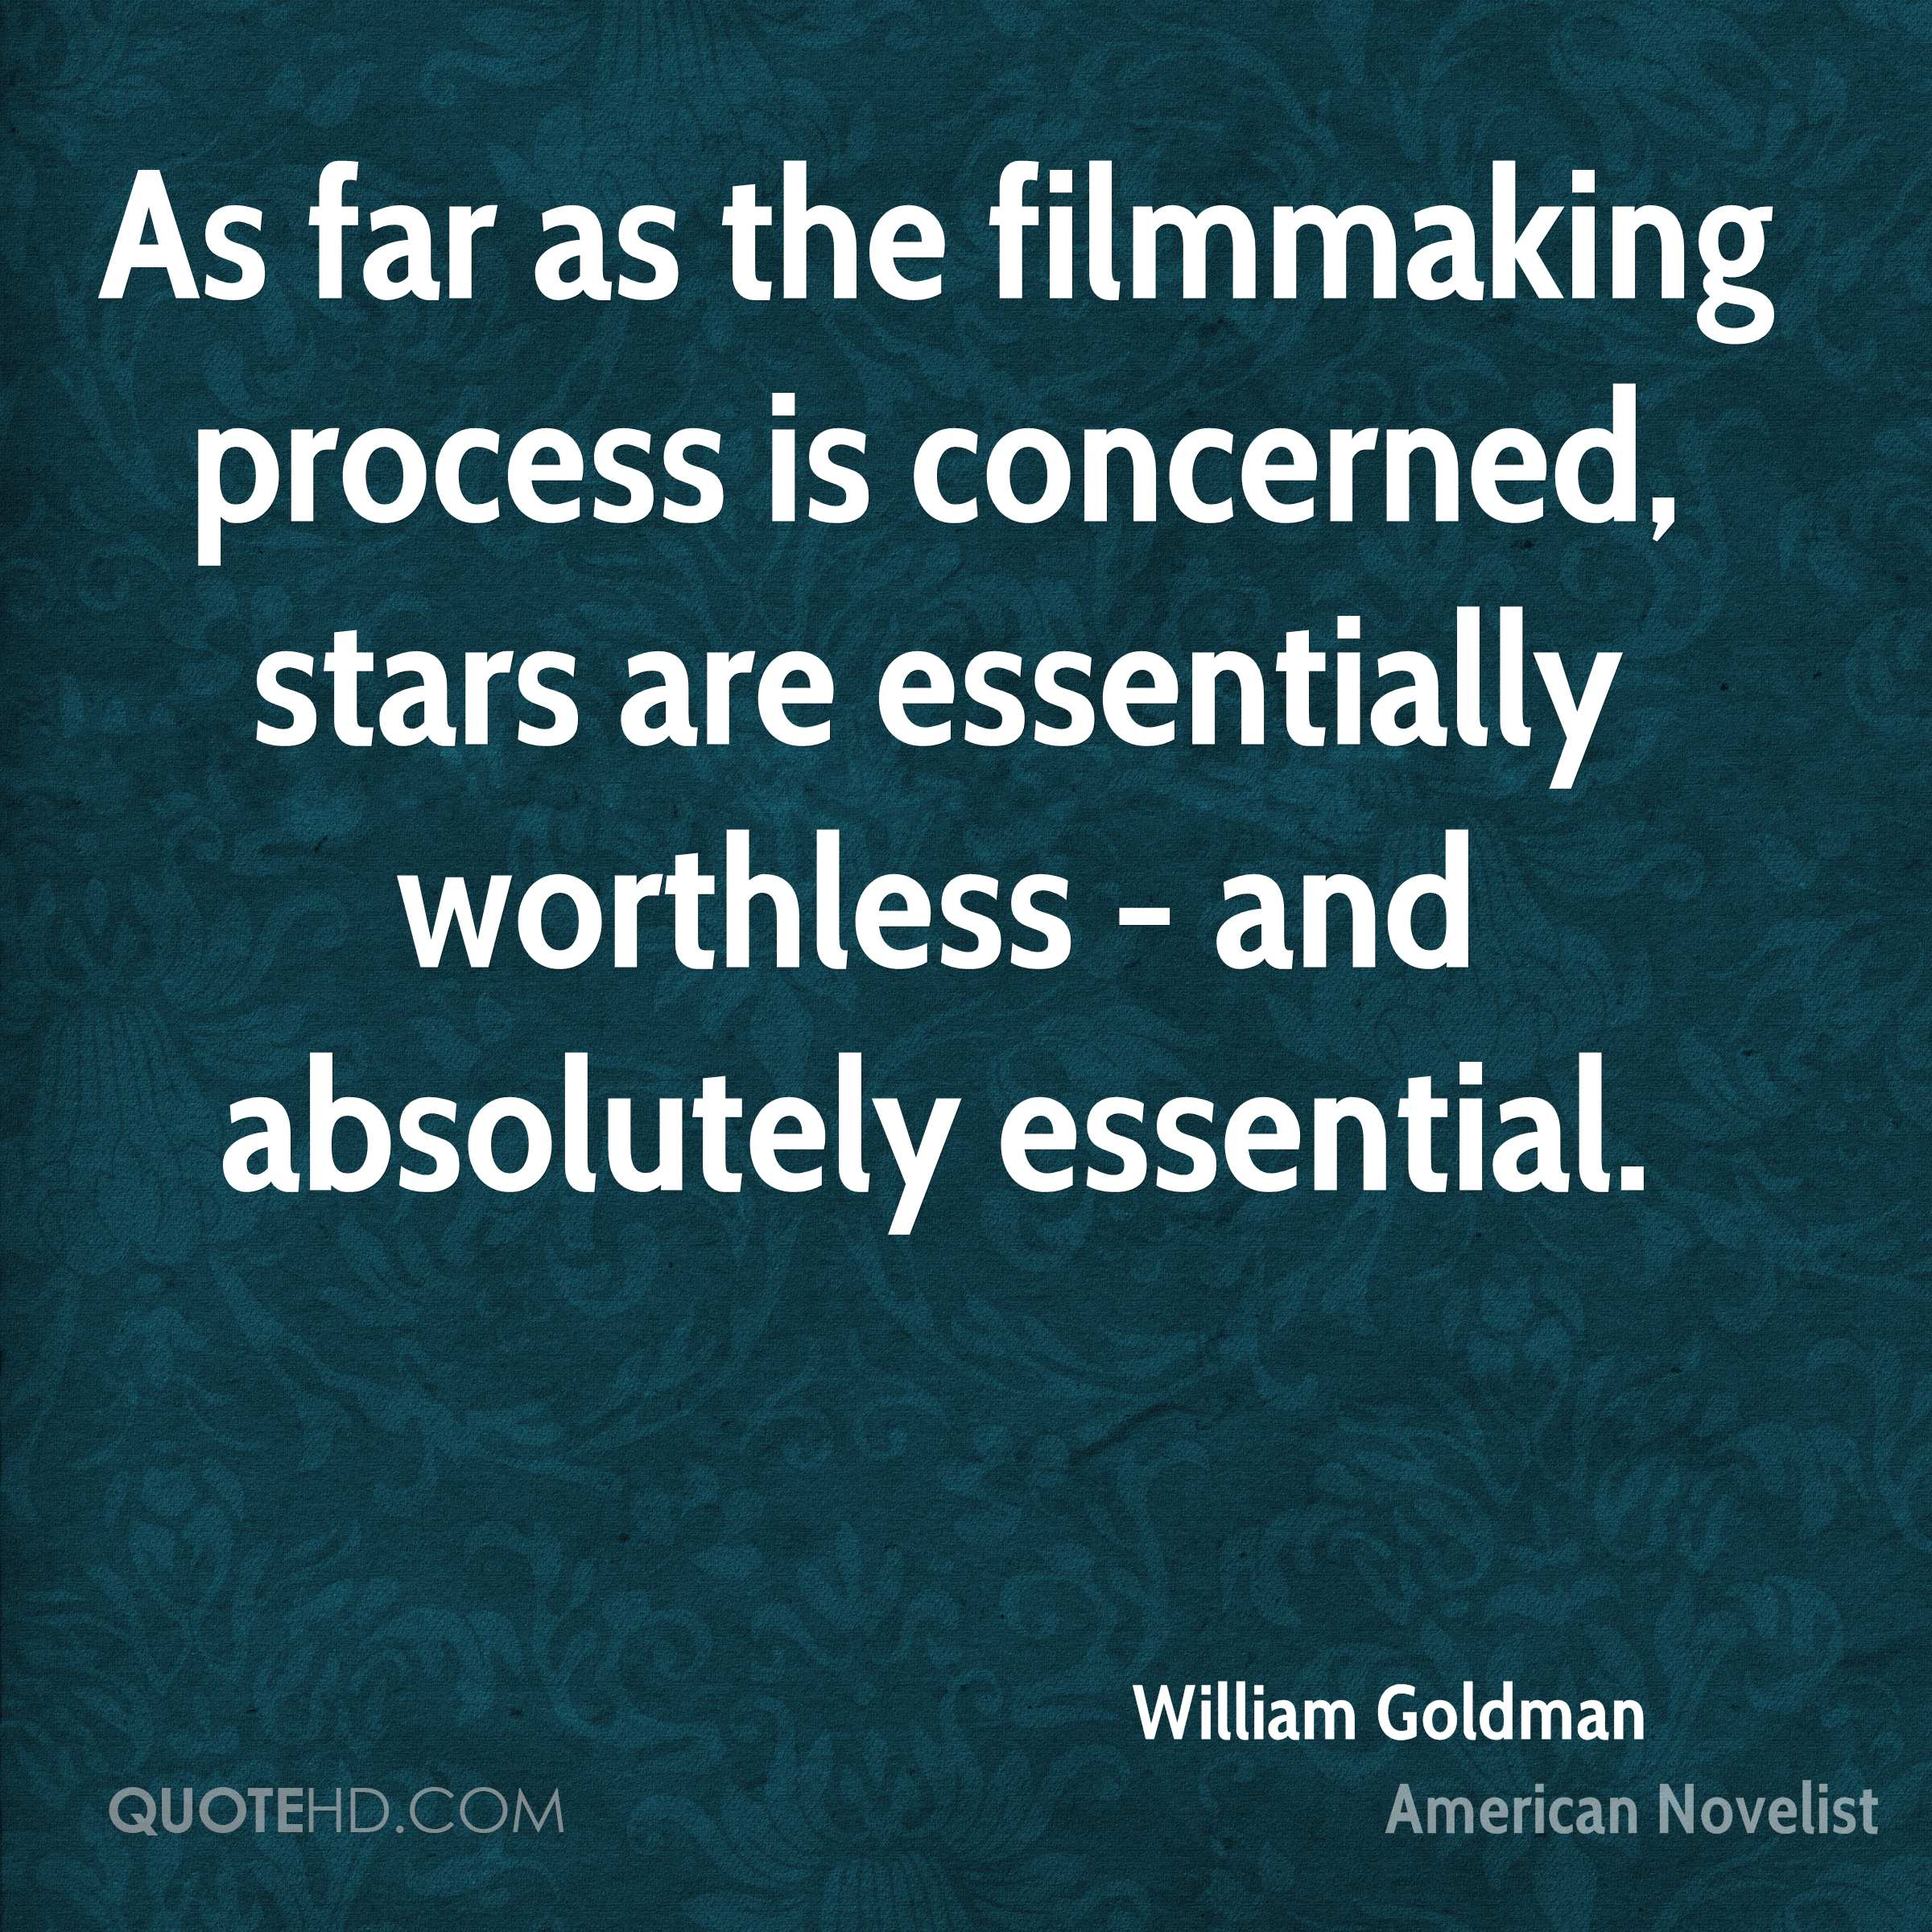 As far as the filmmaking process is concerned, stars are essentially worthless - and absolutely essential.